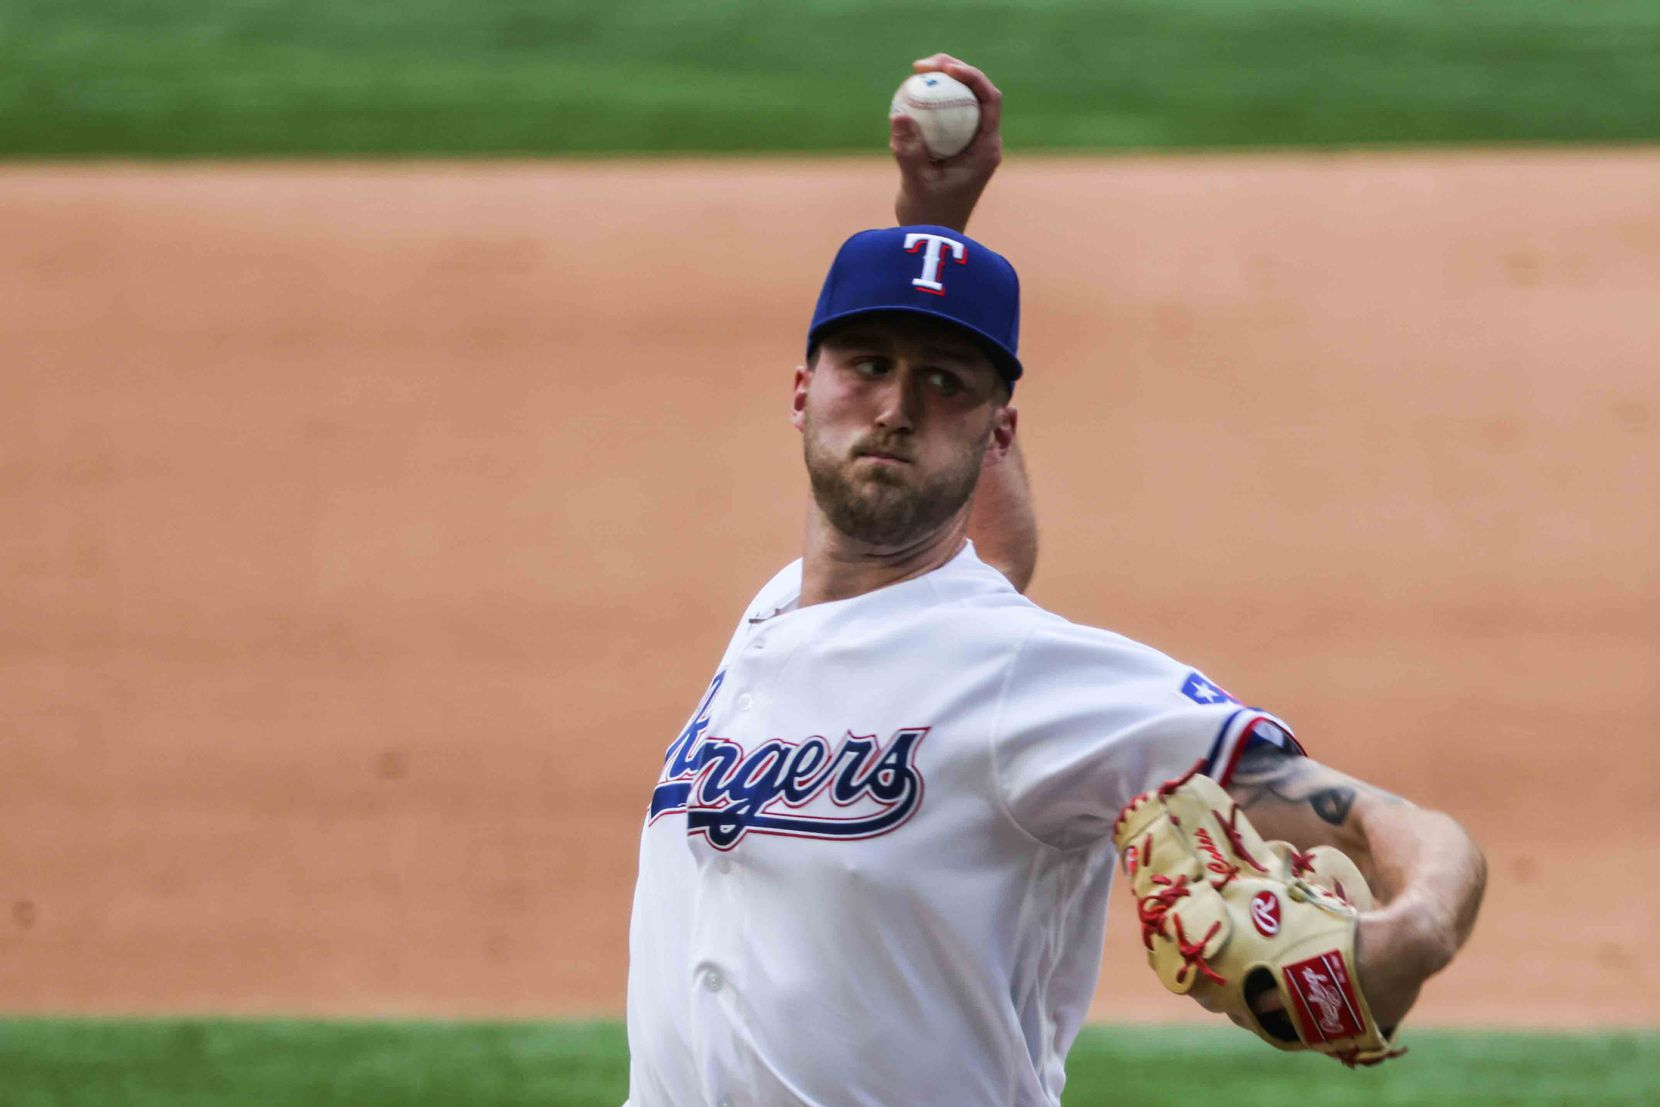 Texas Rangers' Kyle Cody No. 54 pitches against Toronto Blue Jays at the Globe Life Field during opening day in Arlington, Texas on Monday, April 5, 2021. (Lola Gomez/The Dallas Morning News)